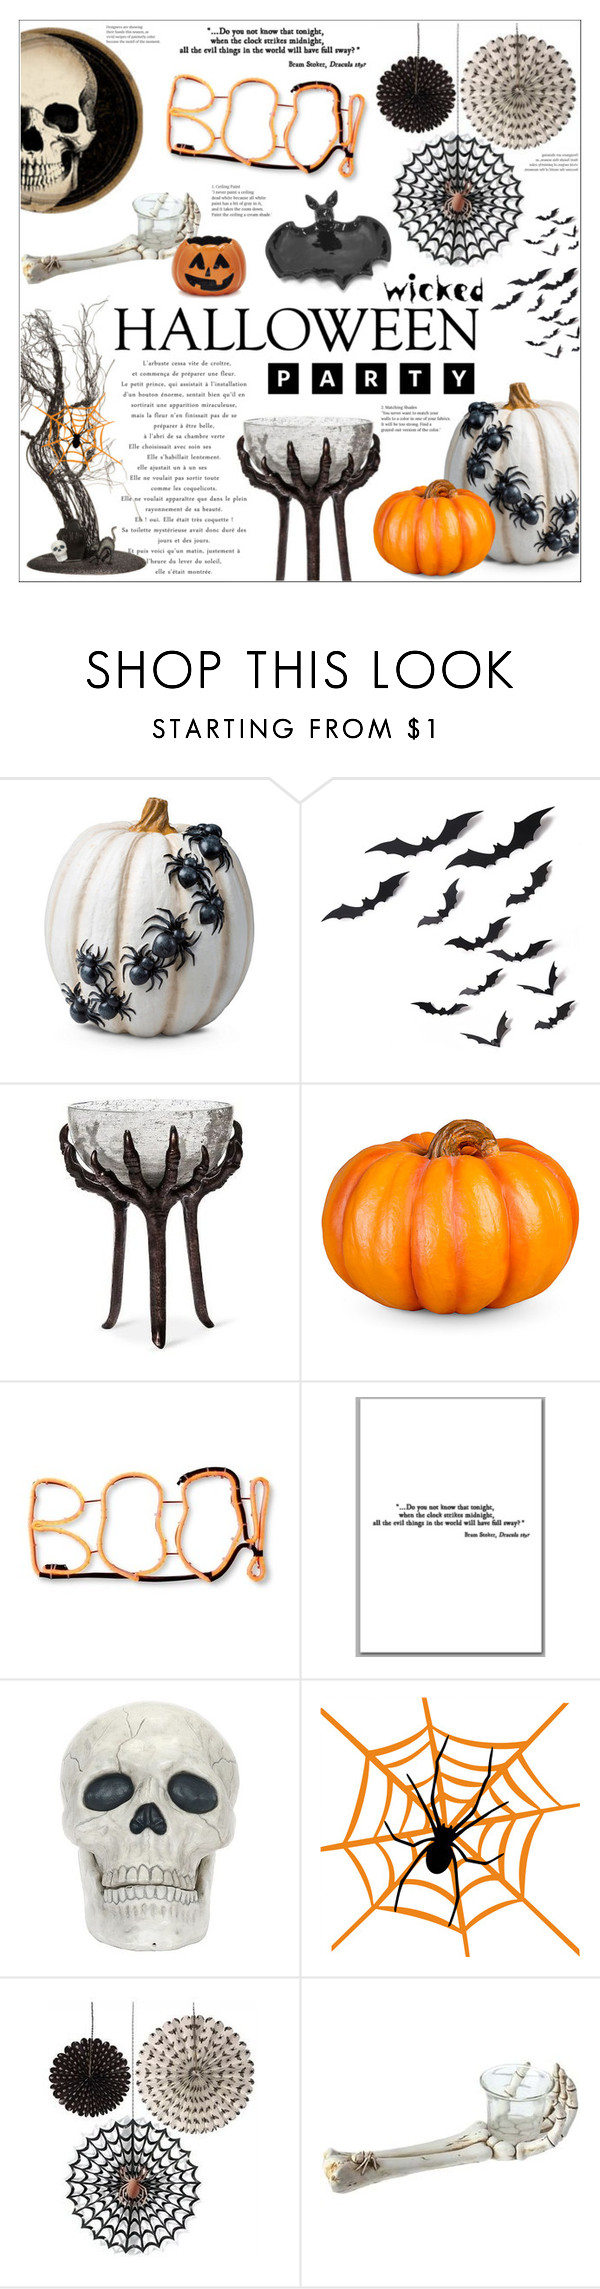 """""""Halloween Party Decor"""" by leinapacheco ❤ liked on Polyvore featuring interior, interiors, interior design, home, home decor, interior decorating, Improvements, Sur La Table, Halloween and Halloweenparty"""